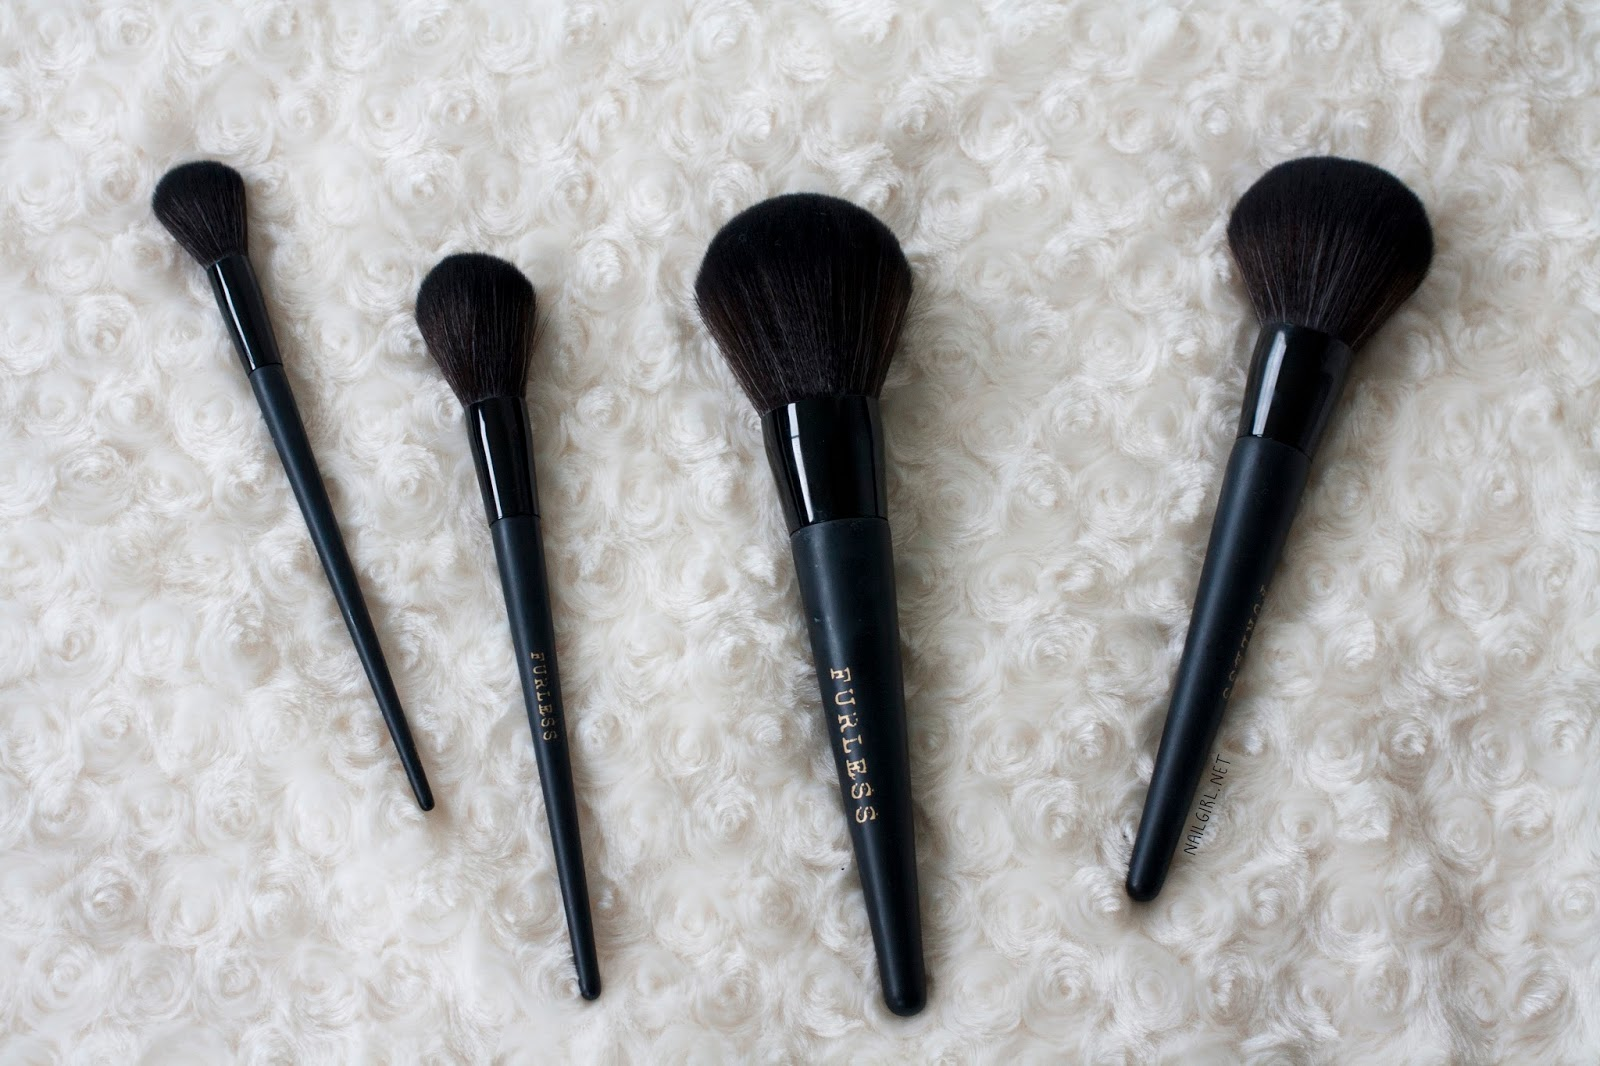 furless cosmetics cruelty free makeup brushes